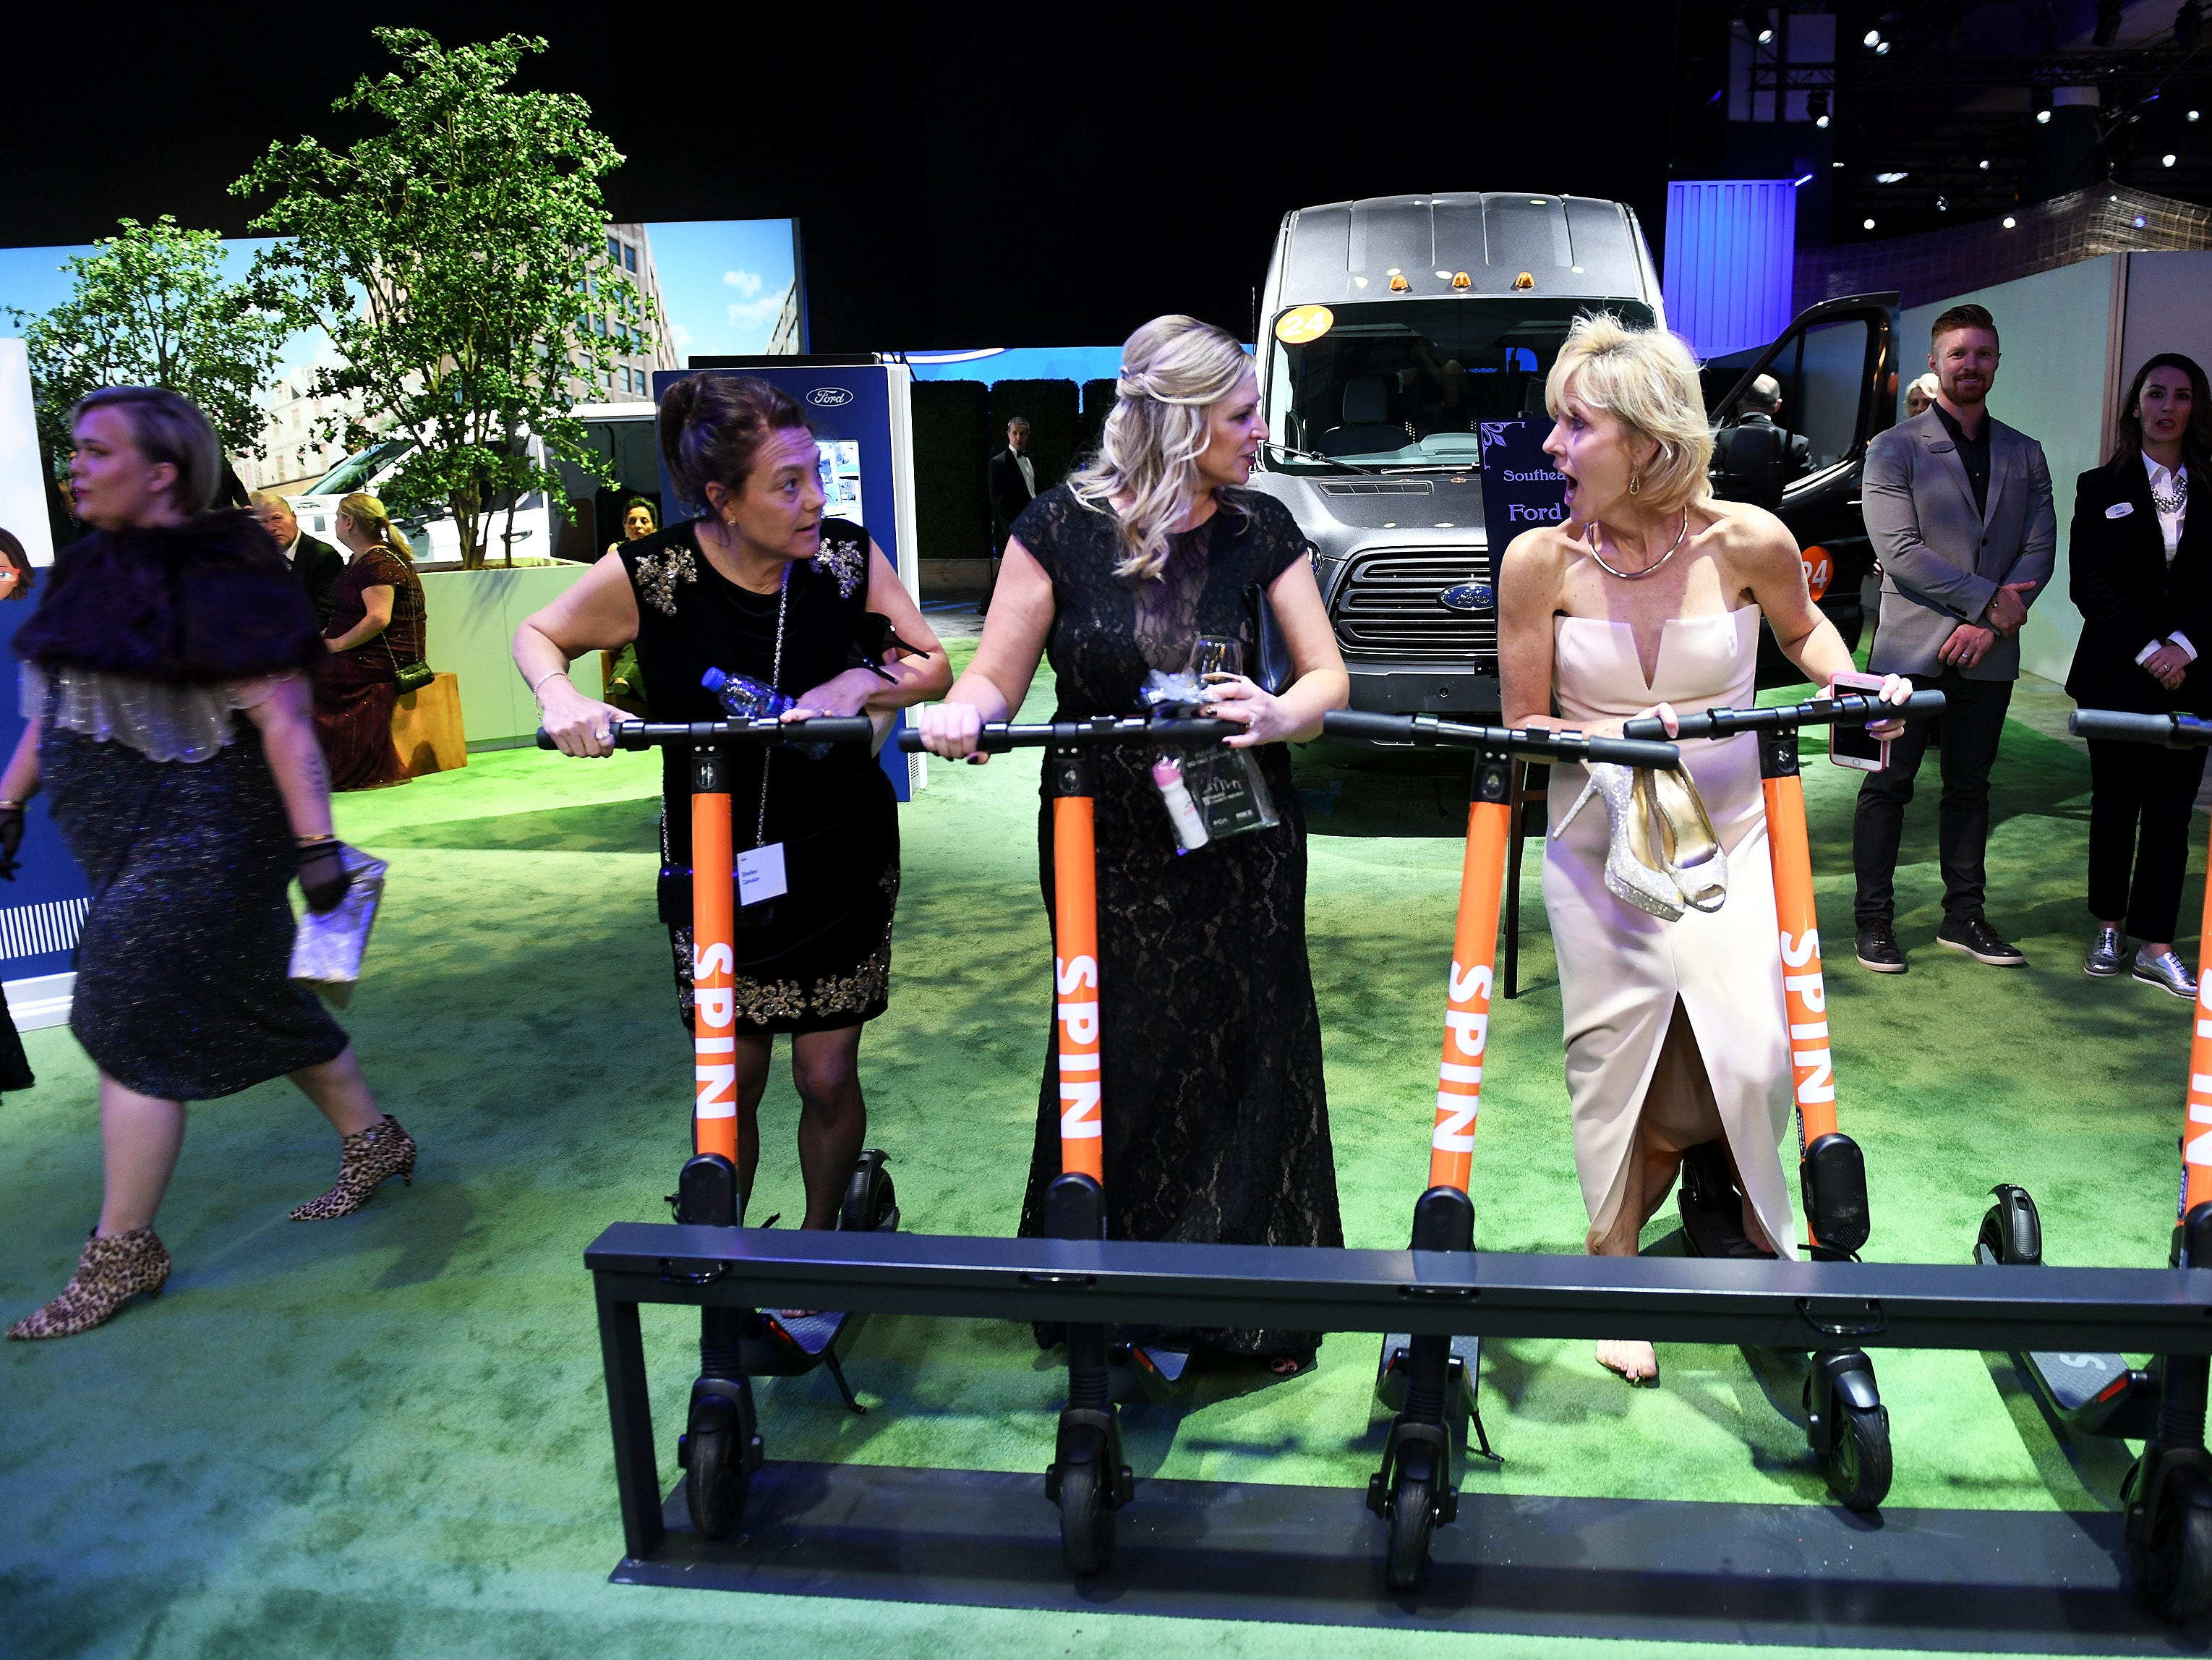 From left, Shelley Catalan of Ann Arbor, Kelly Hollis Brown of Northville and Colleen Luck of Mount Clemens check out Spin scooters at the Ford exhibit.